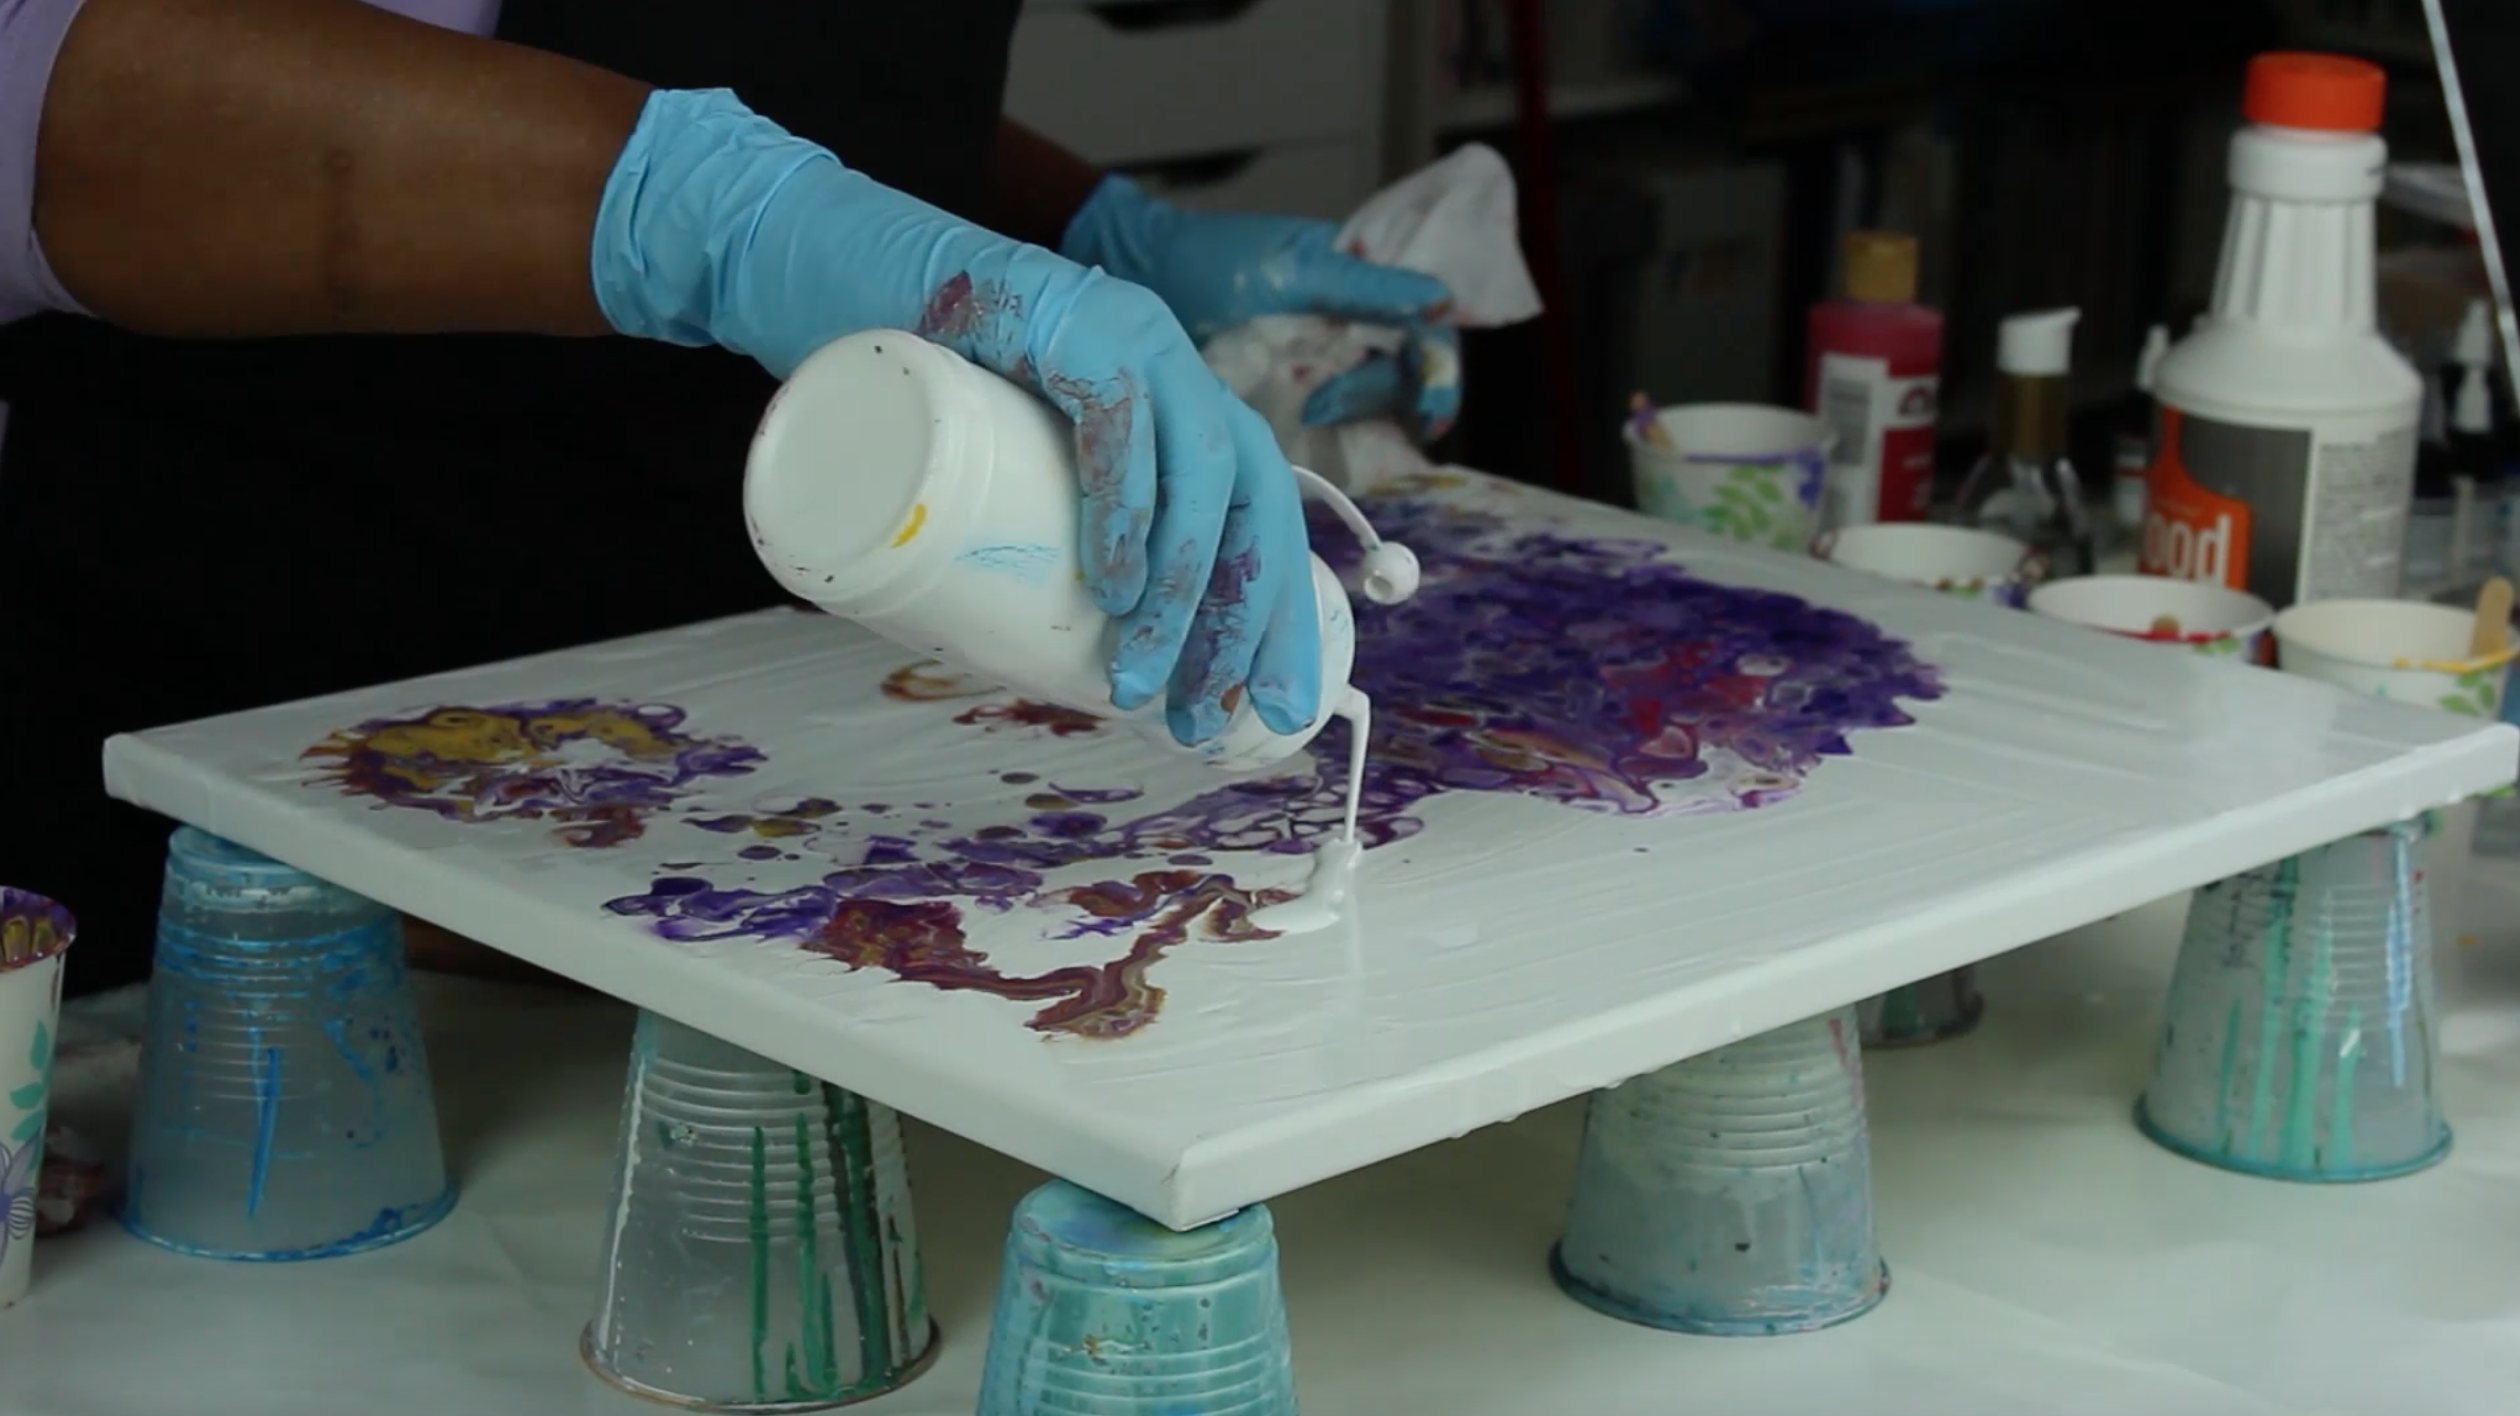 Artist is pouring white paint